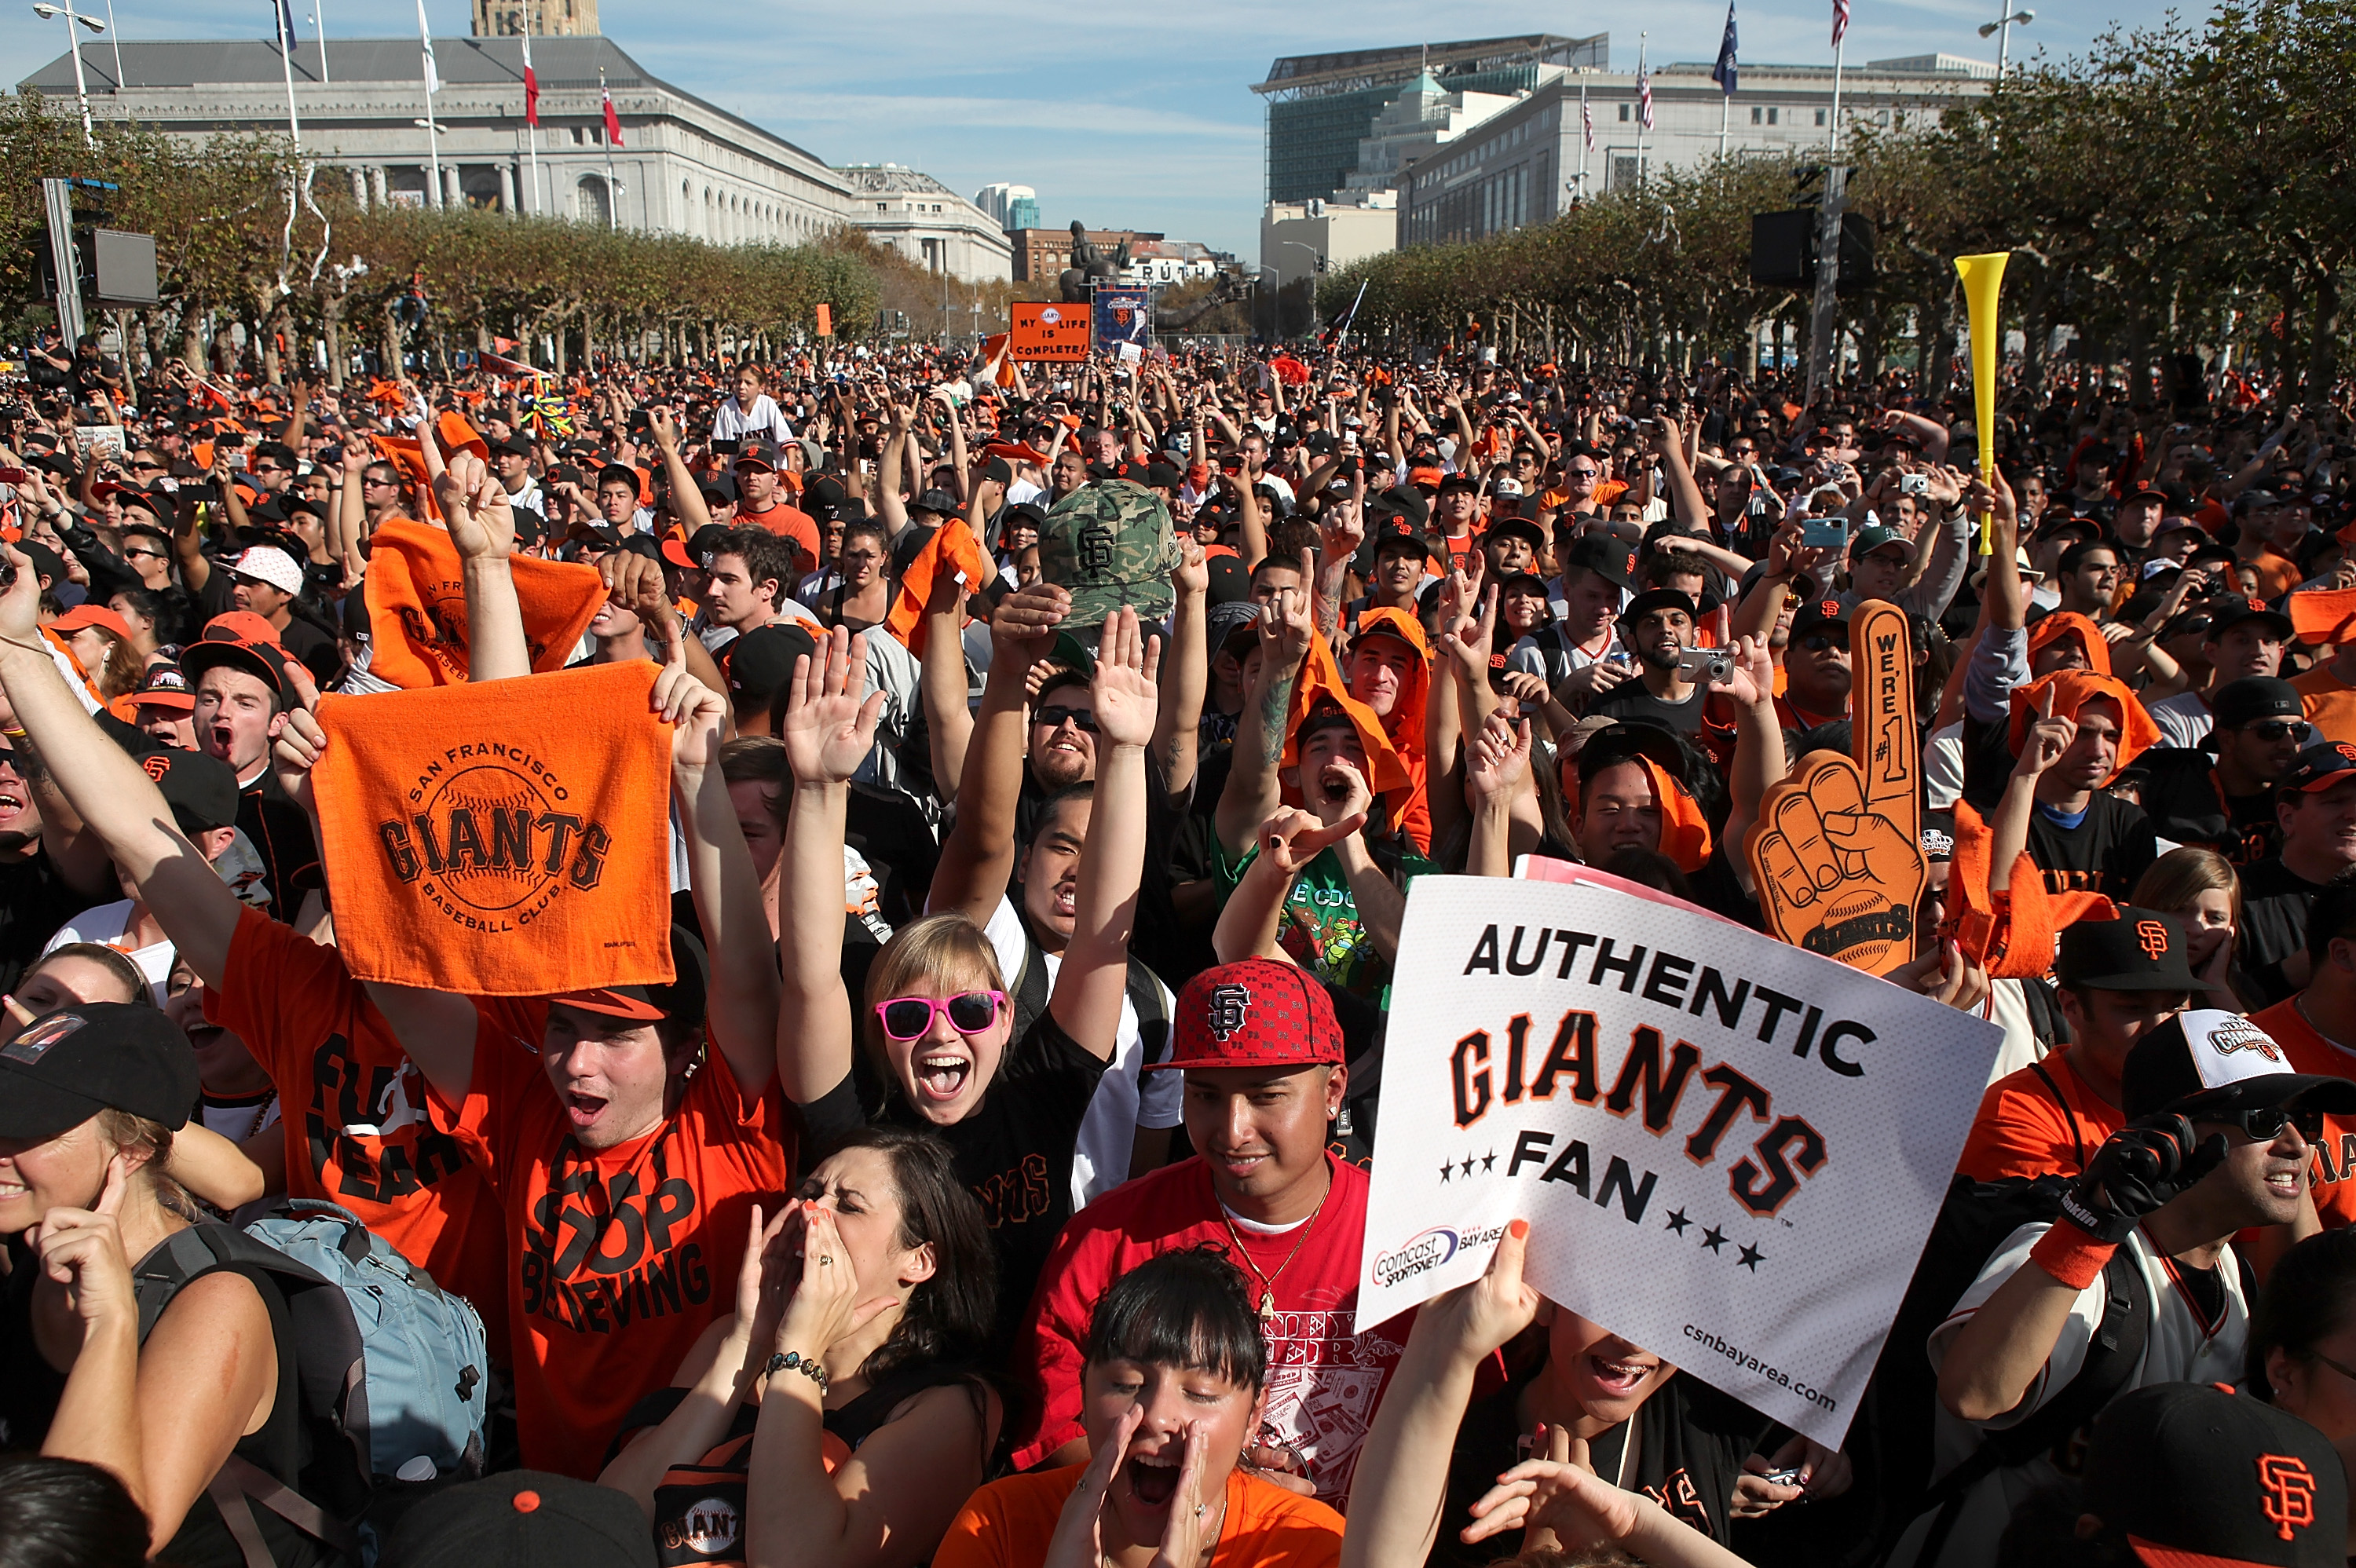 SAN FRANCISCO - NOVEMBER 03:  San Francisco Giants fans pack into the Civic Center Plaza during the Giants' victory parade on November 3, 2010 in San Francisco, California. Thousands of Giants fans lined the streets of San Francisco to watch the San Franc